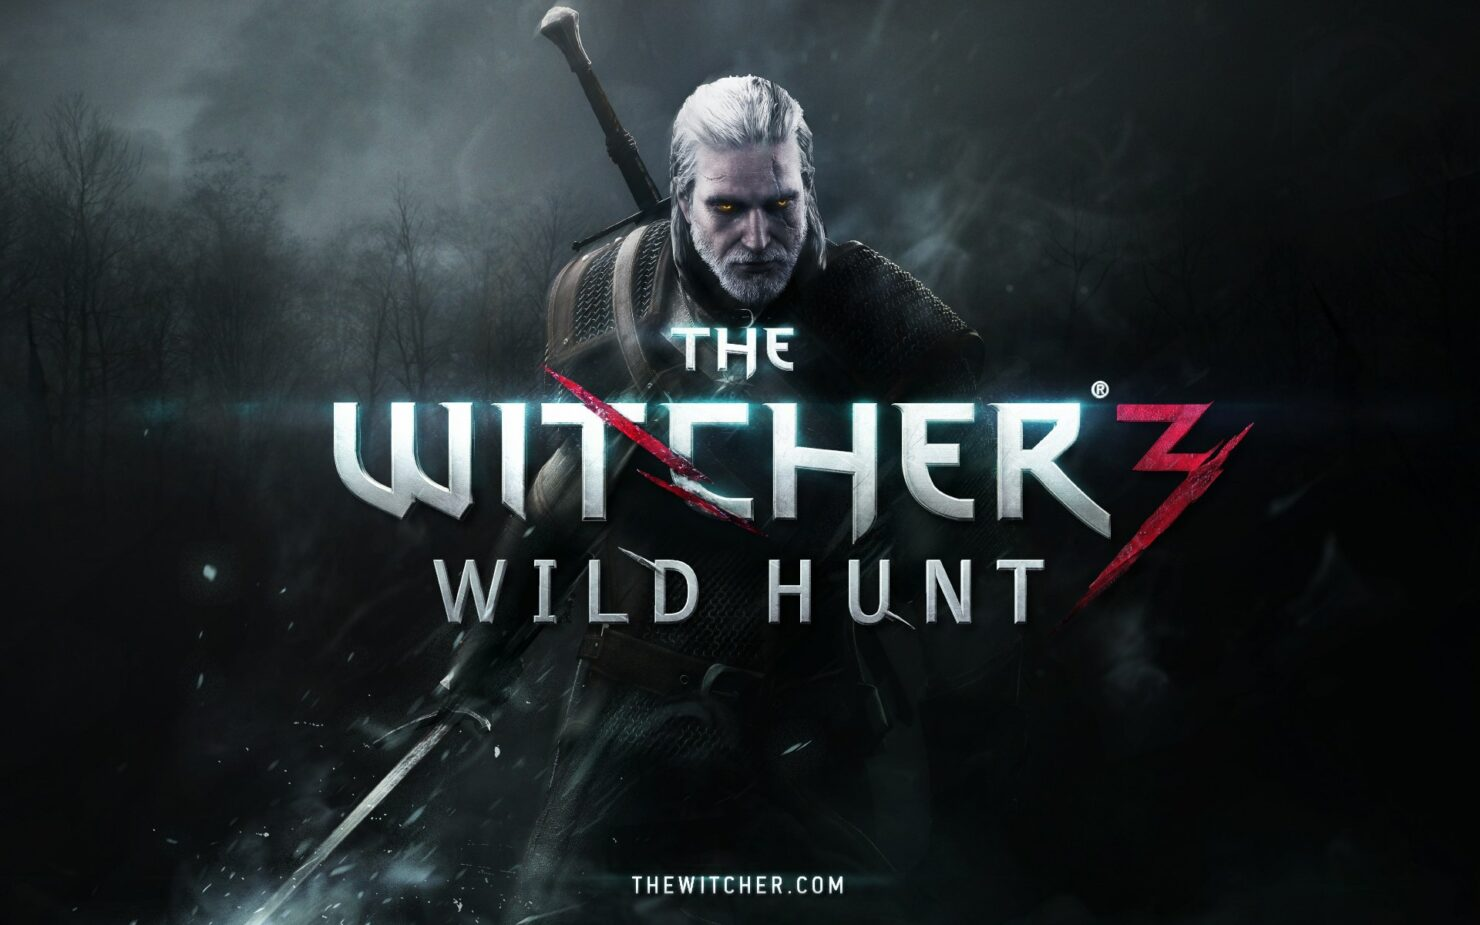 Witcher 3 PS4 HDR patch